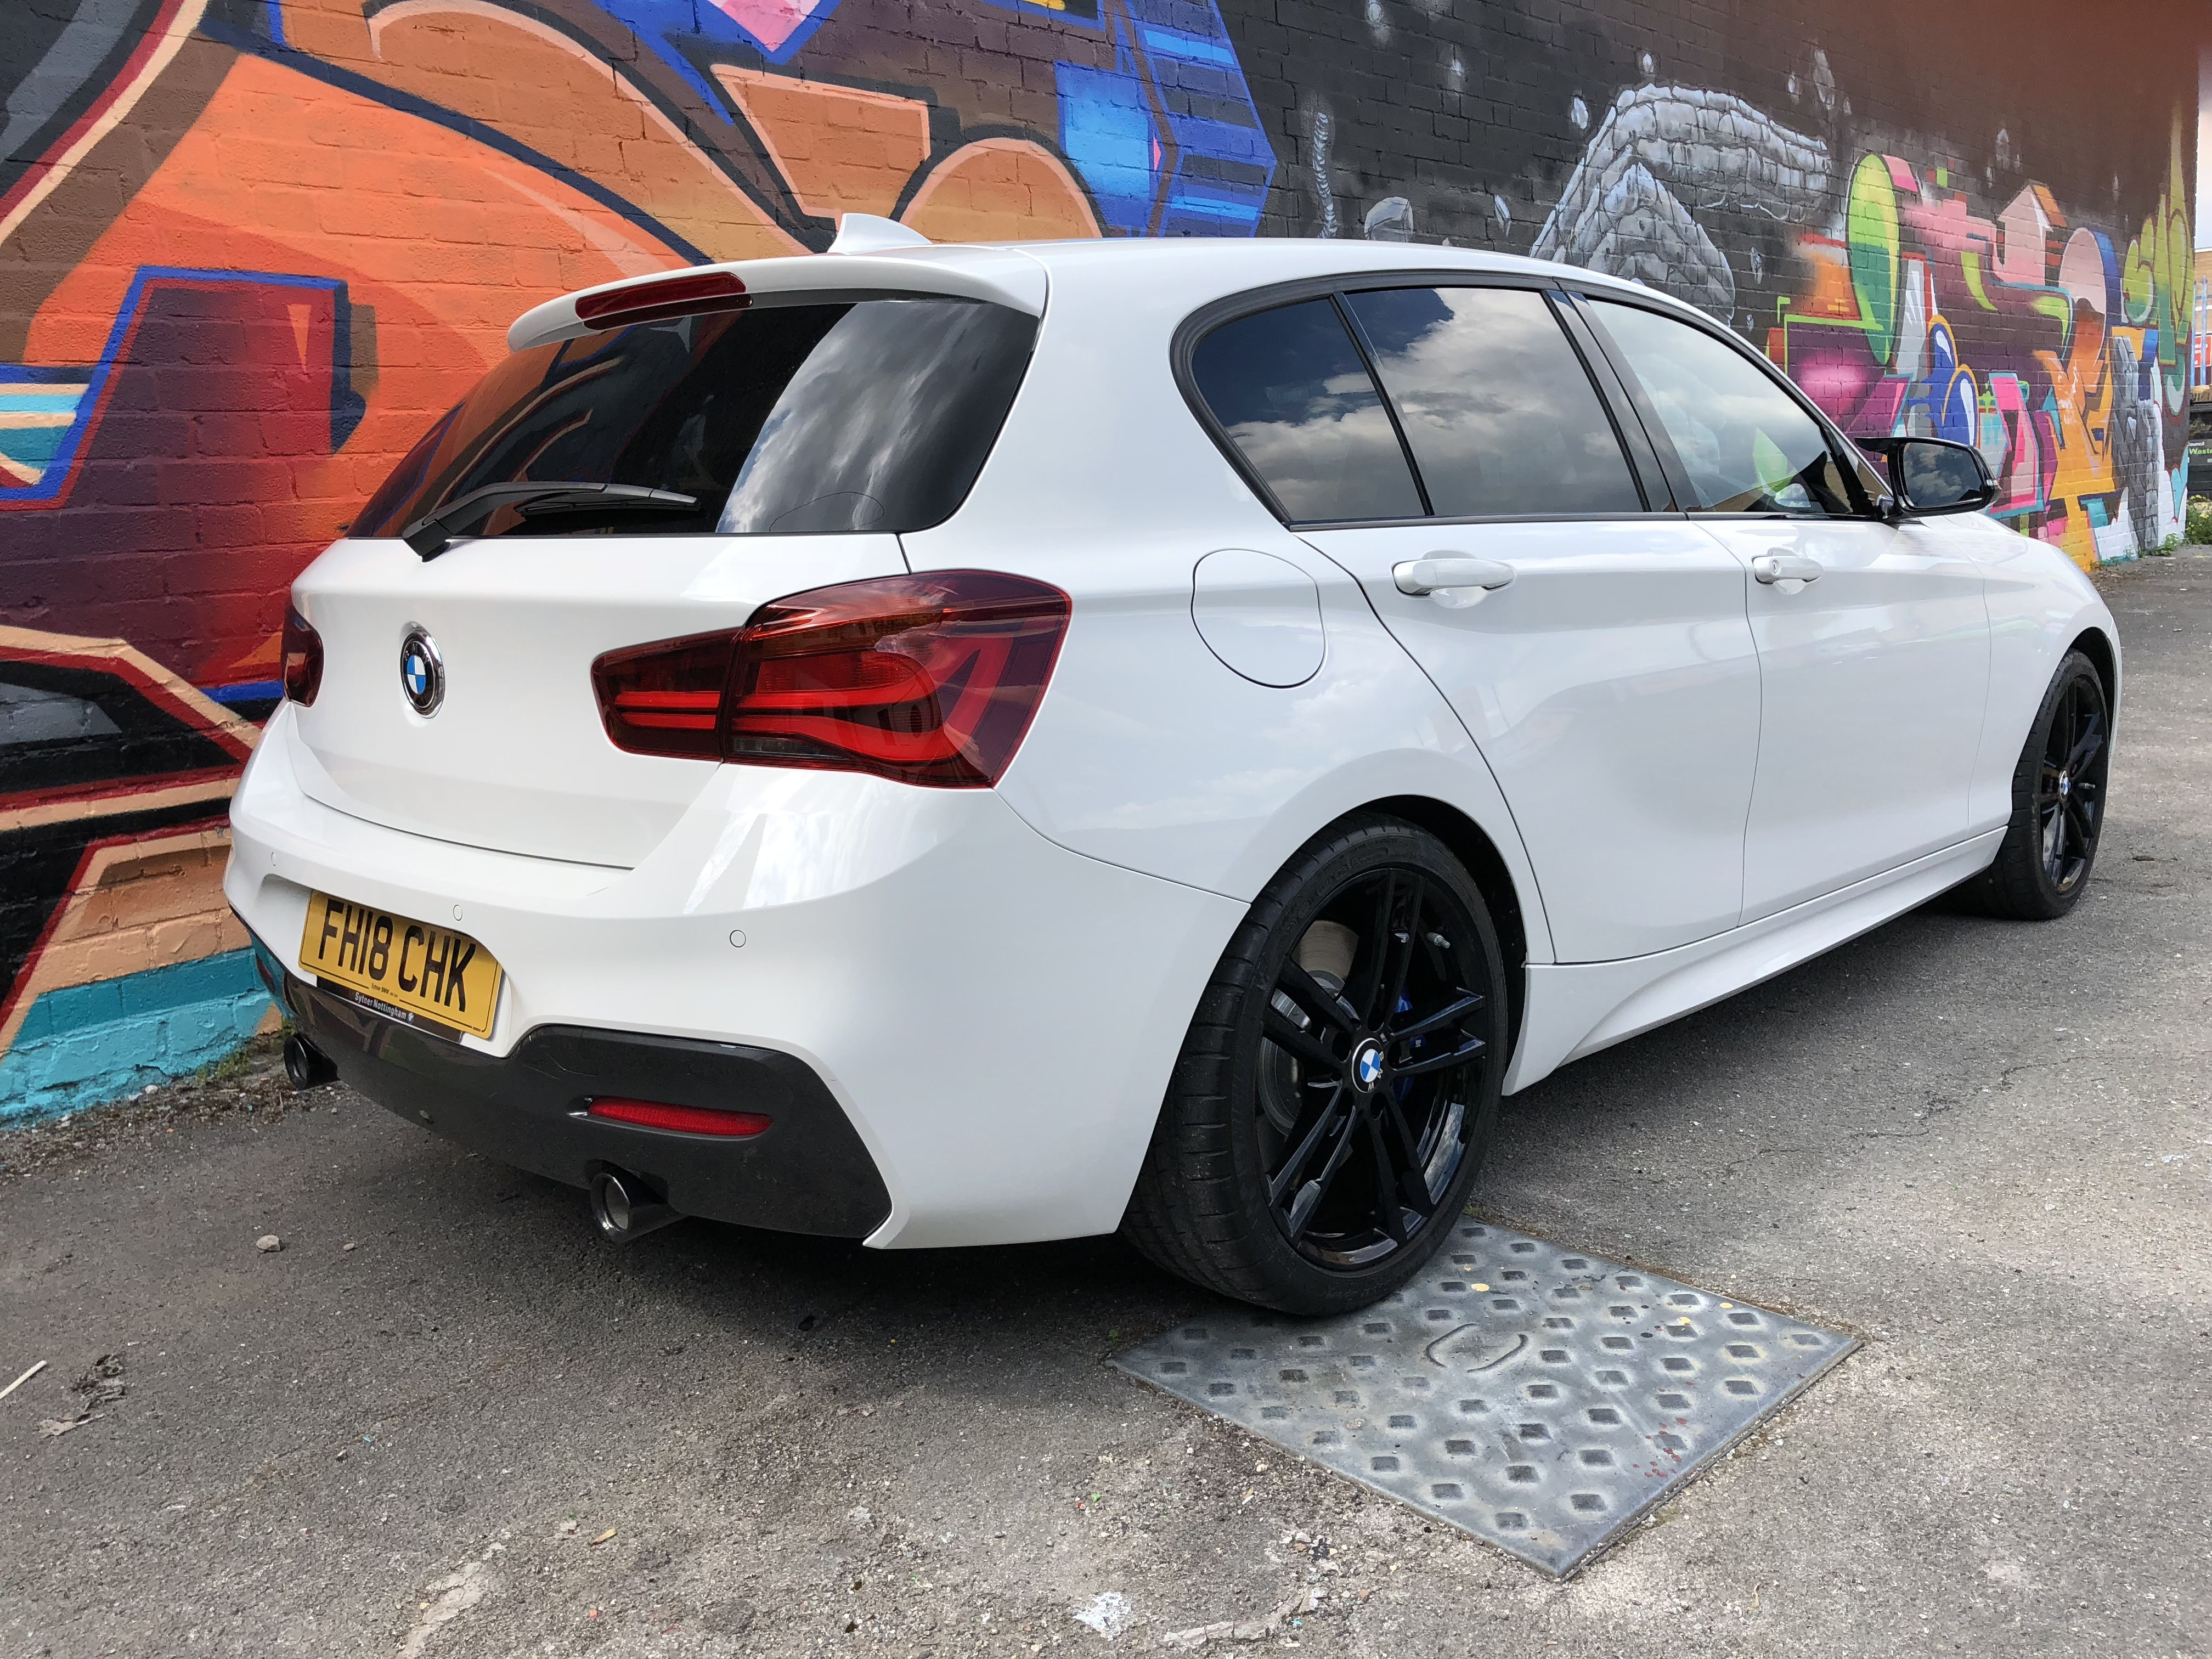 White M140i Shadow Edition With Images Bmw 1 Series Bmw Cars Bmw